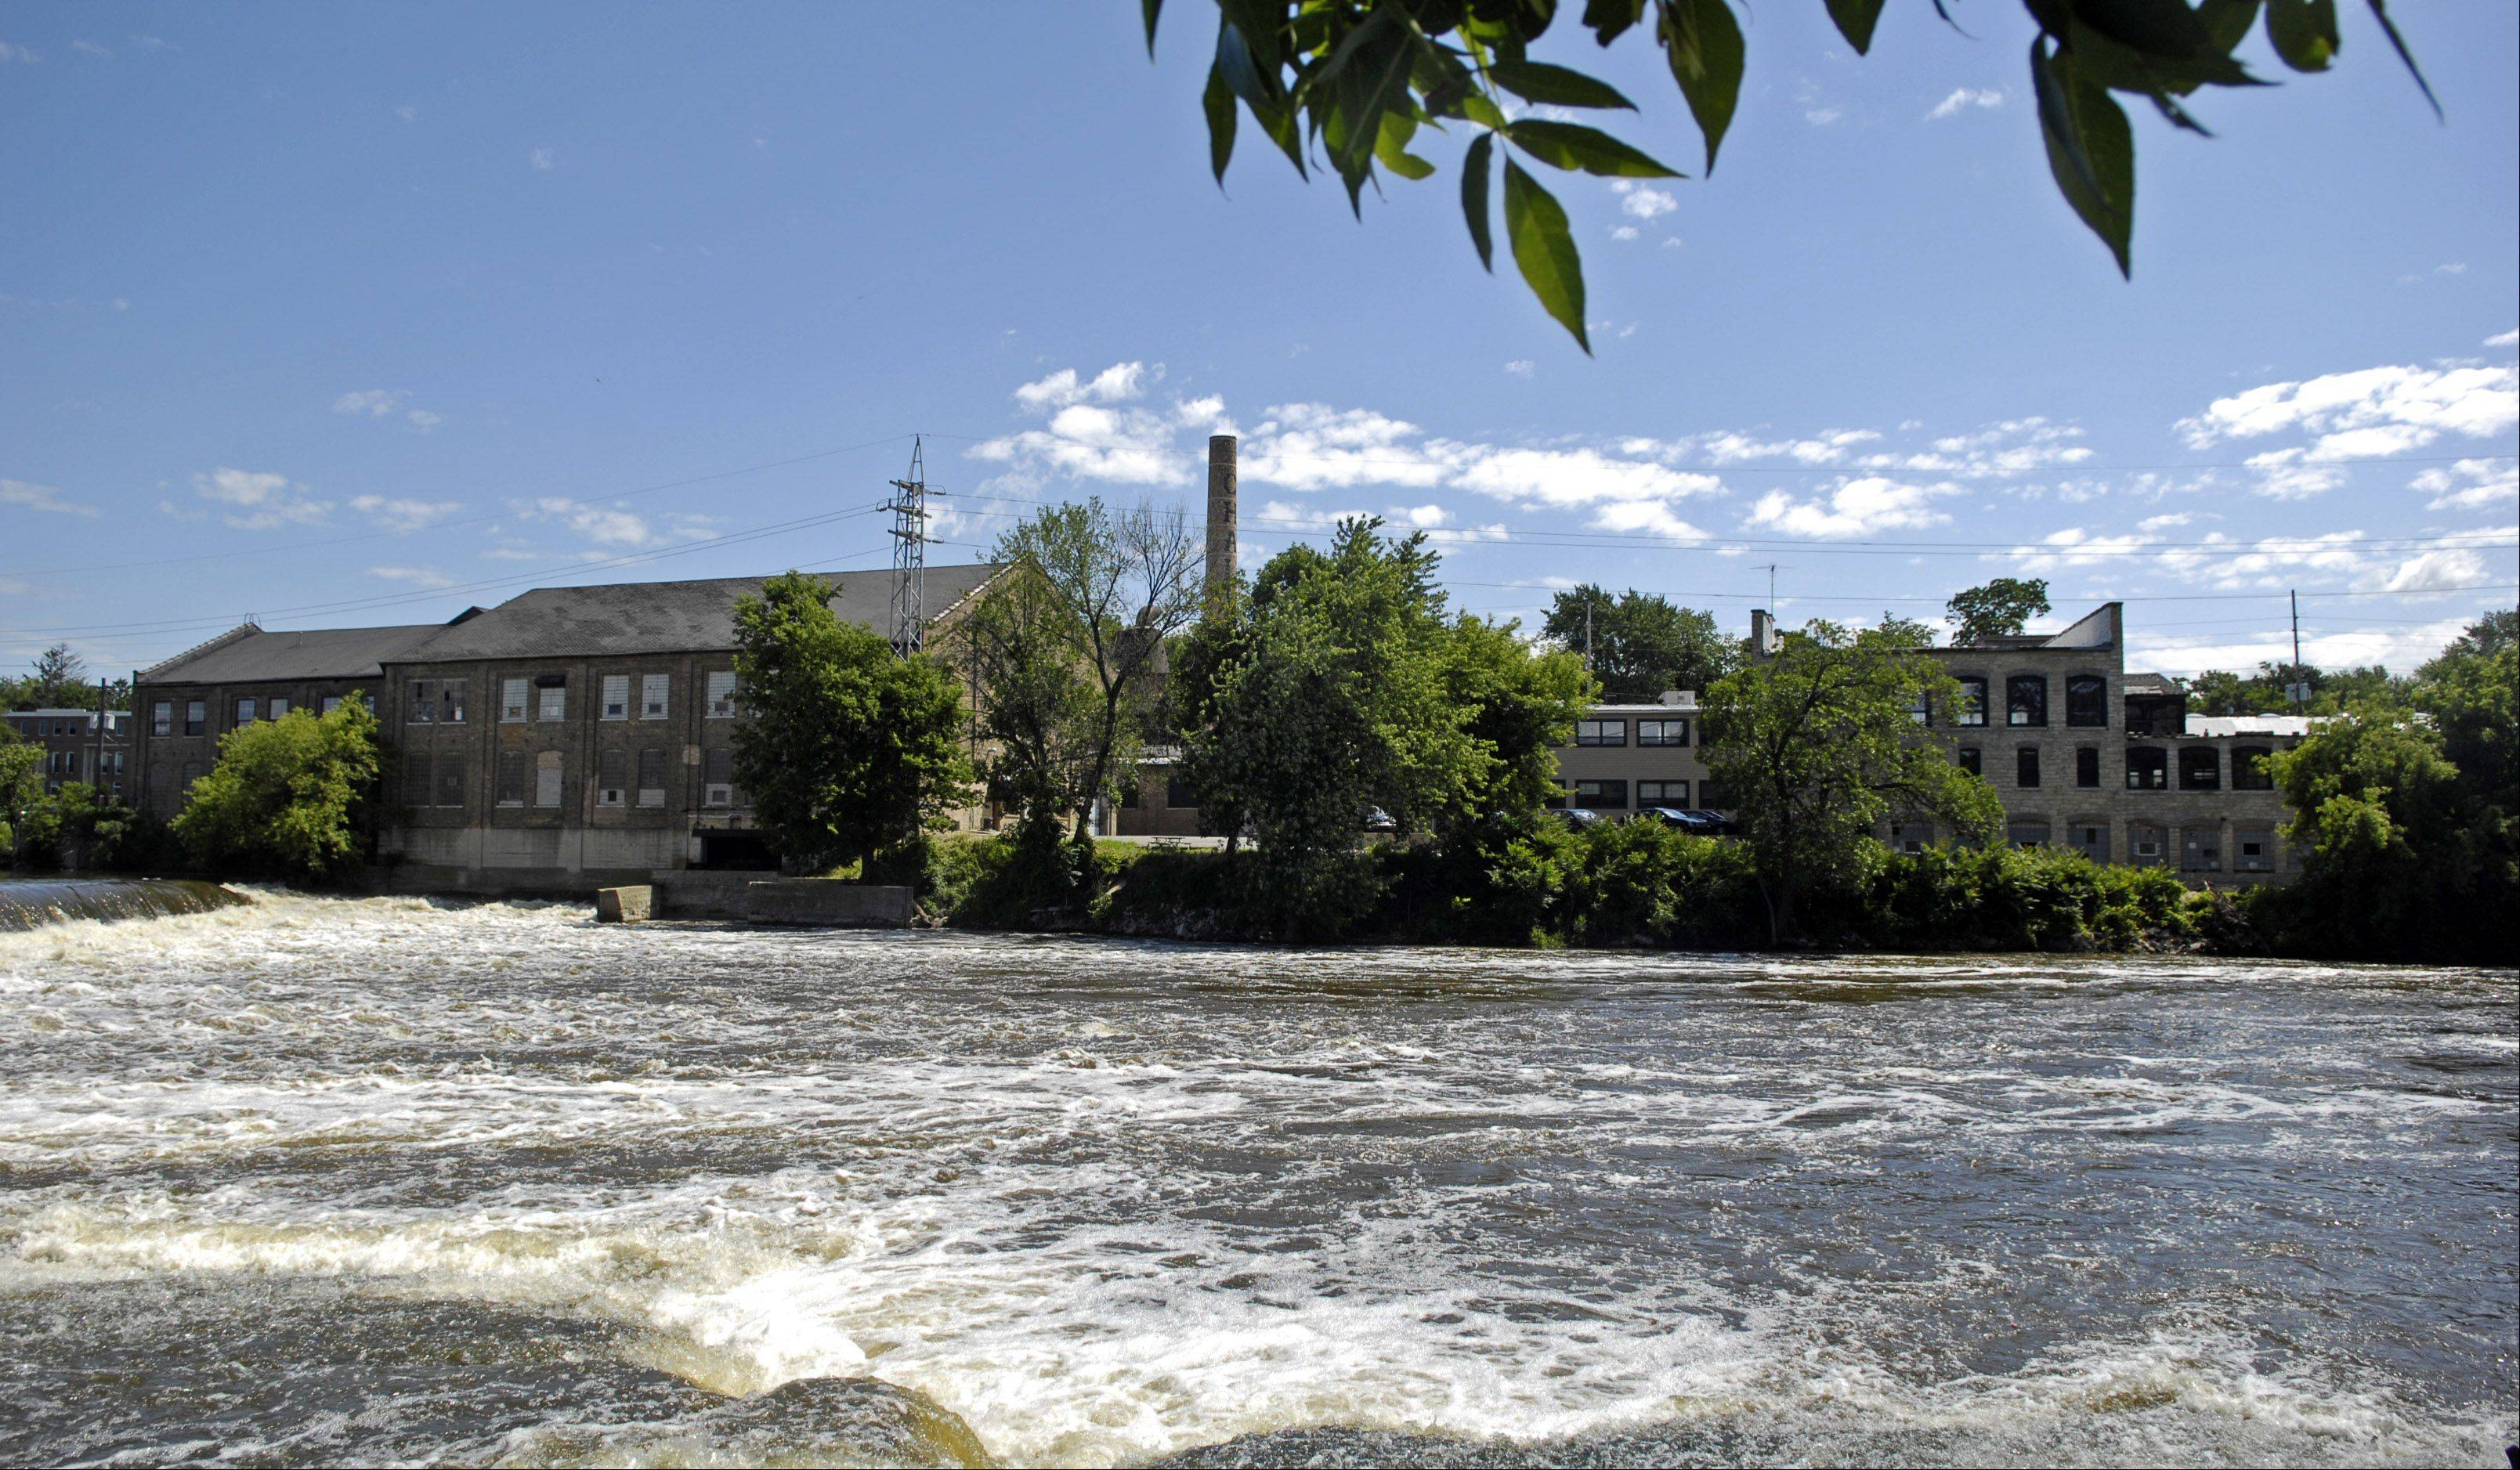 Batavia officials know there still is much work to do along the Fox River, where remnants from a bygone era, such as the Challenge Windmill factory, still sit.